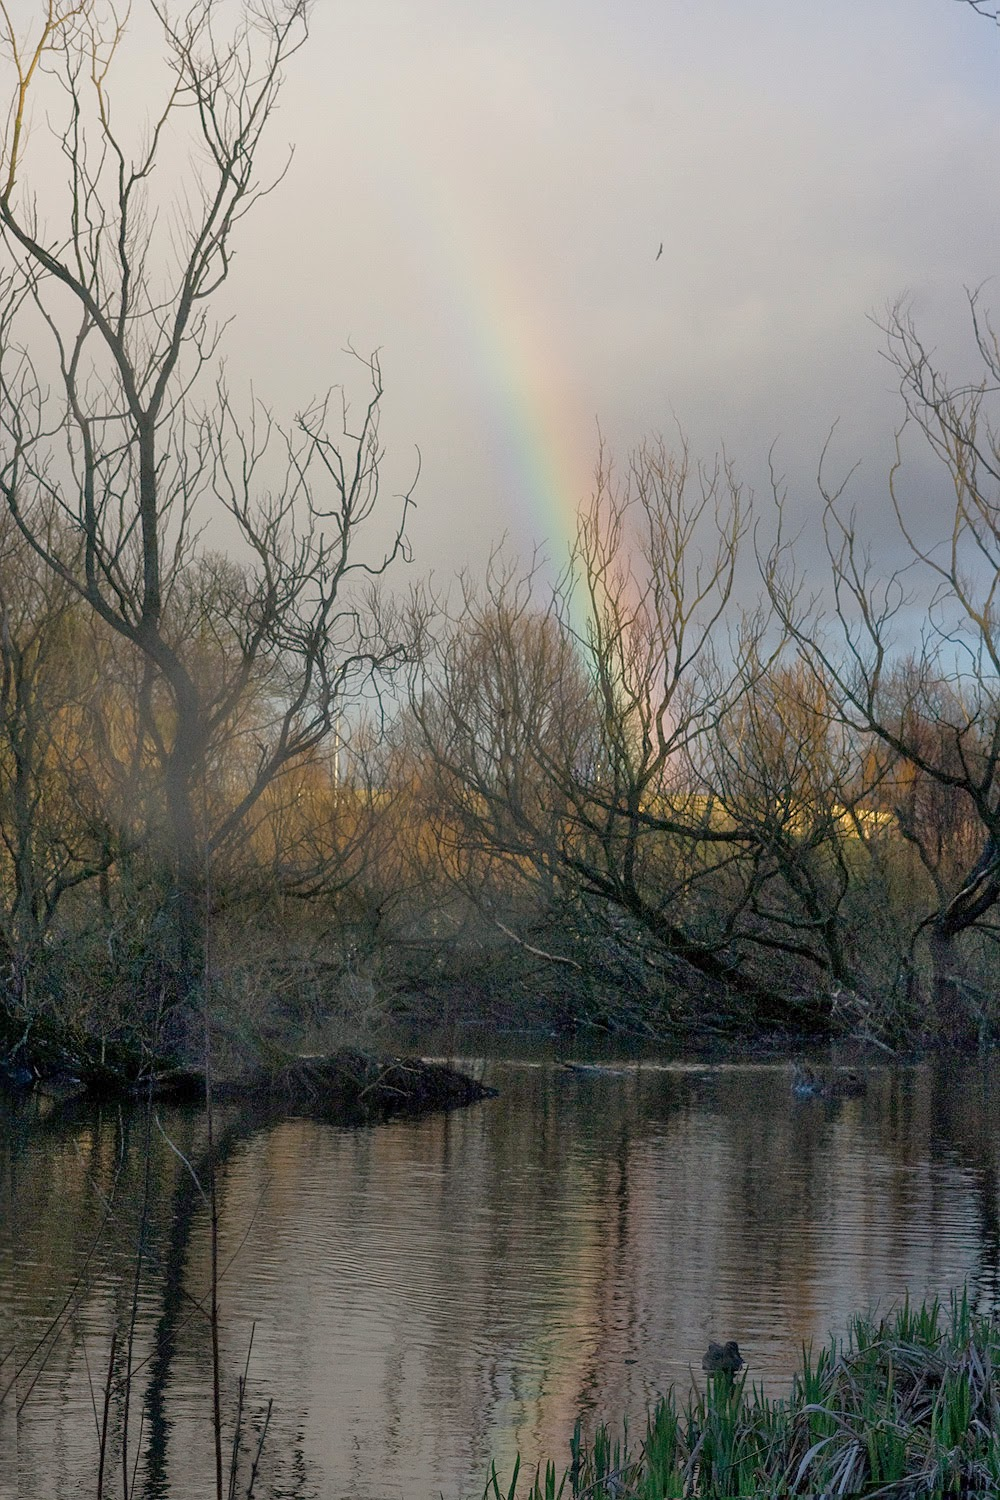 Rainbow reflected in pond